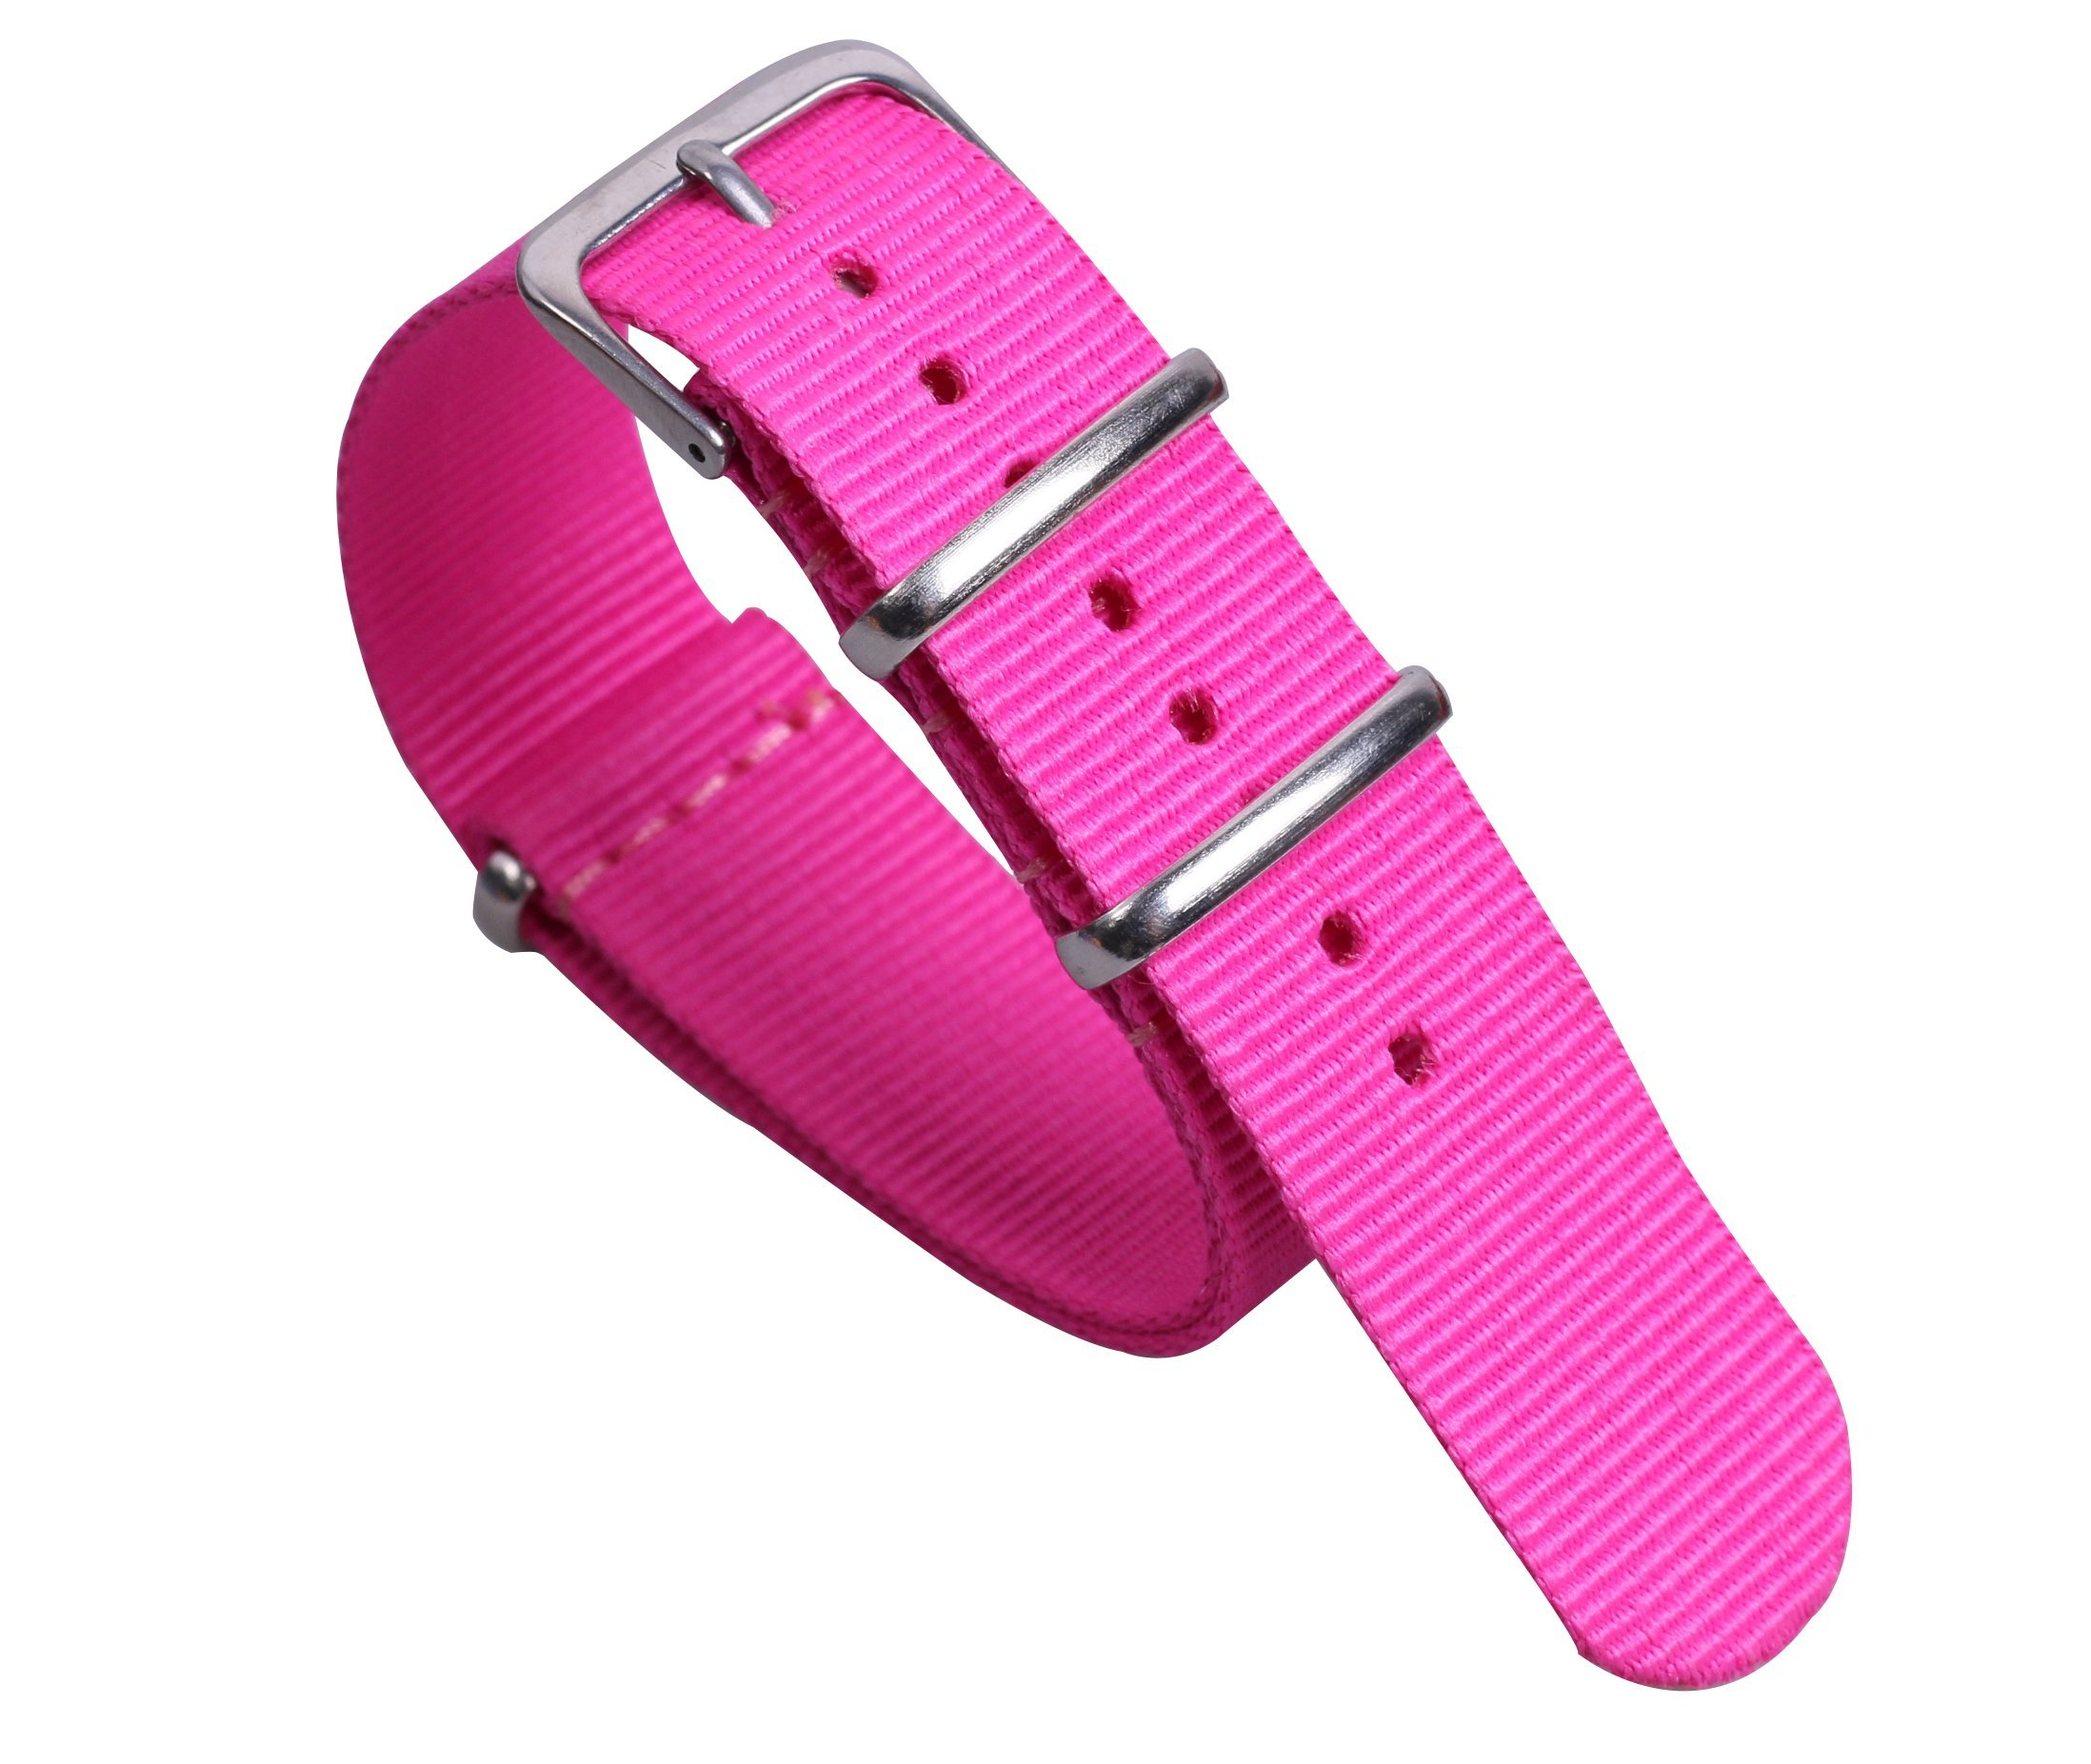 20mm Rose Red Lovely Sweet Girls' NATO Style Nylon Canvas Watch Bands Straps Replacement for Girls